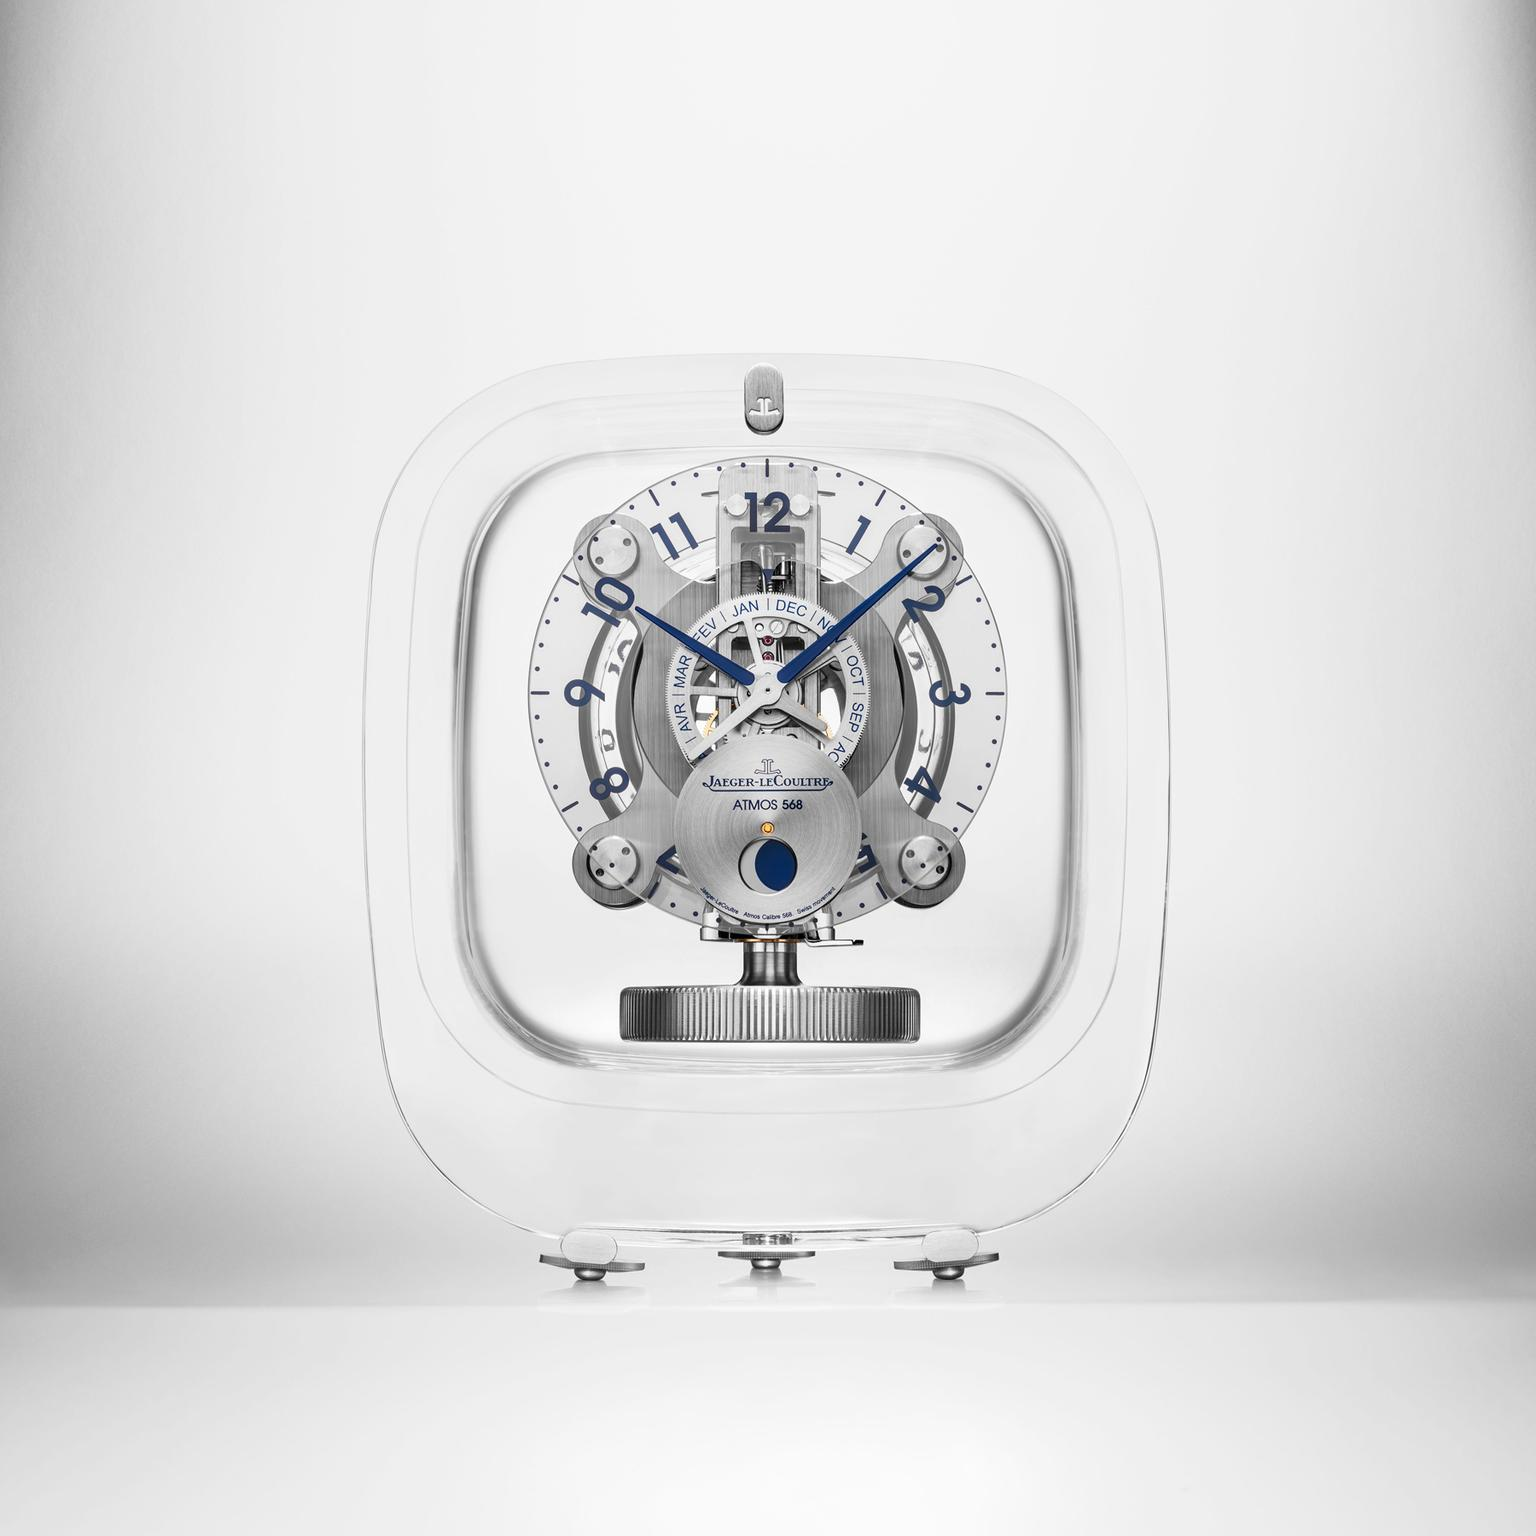 Jaeger-LeCoultre Atmos 568 clock by Marc Newson